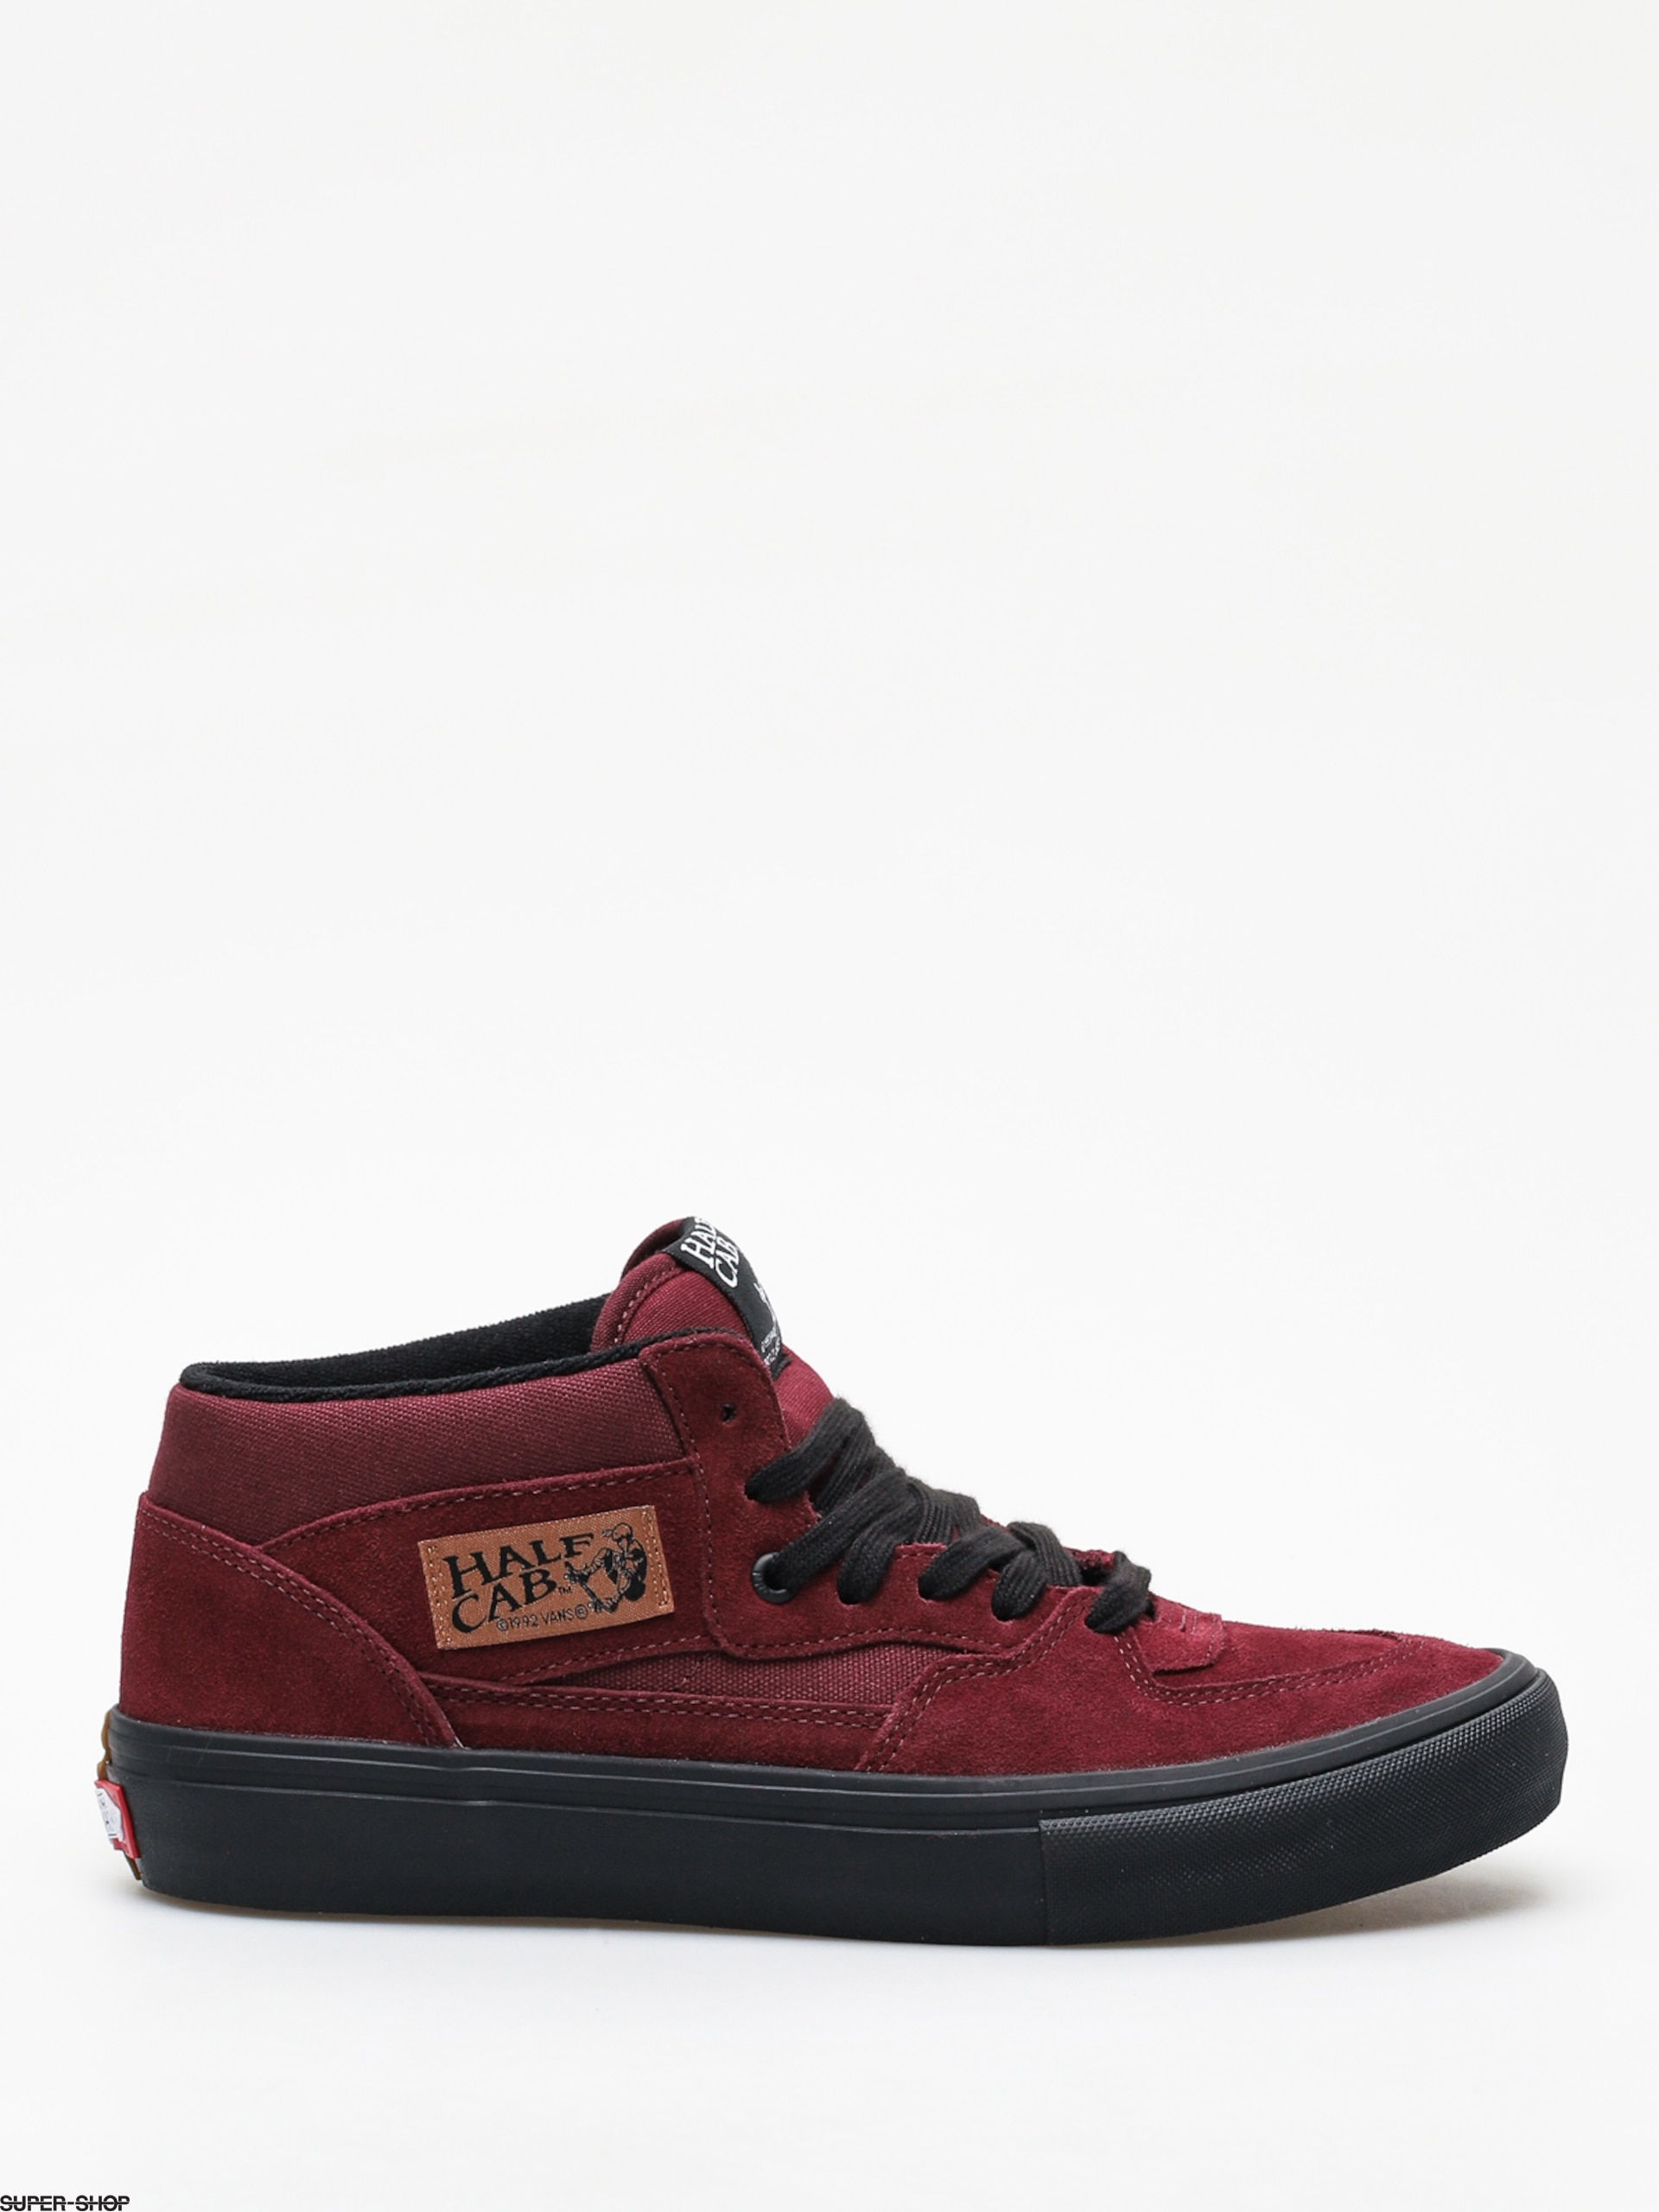 1ff07d524a 1013904-w1920-vans-half-cab-pro-shoes-split-foxing-port-royale.jpg